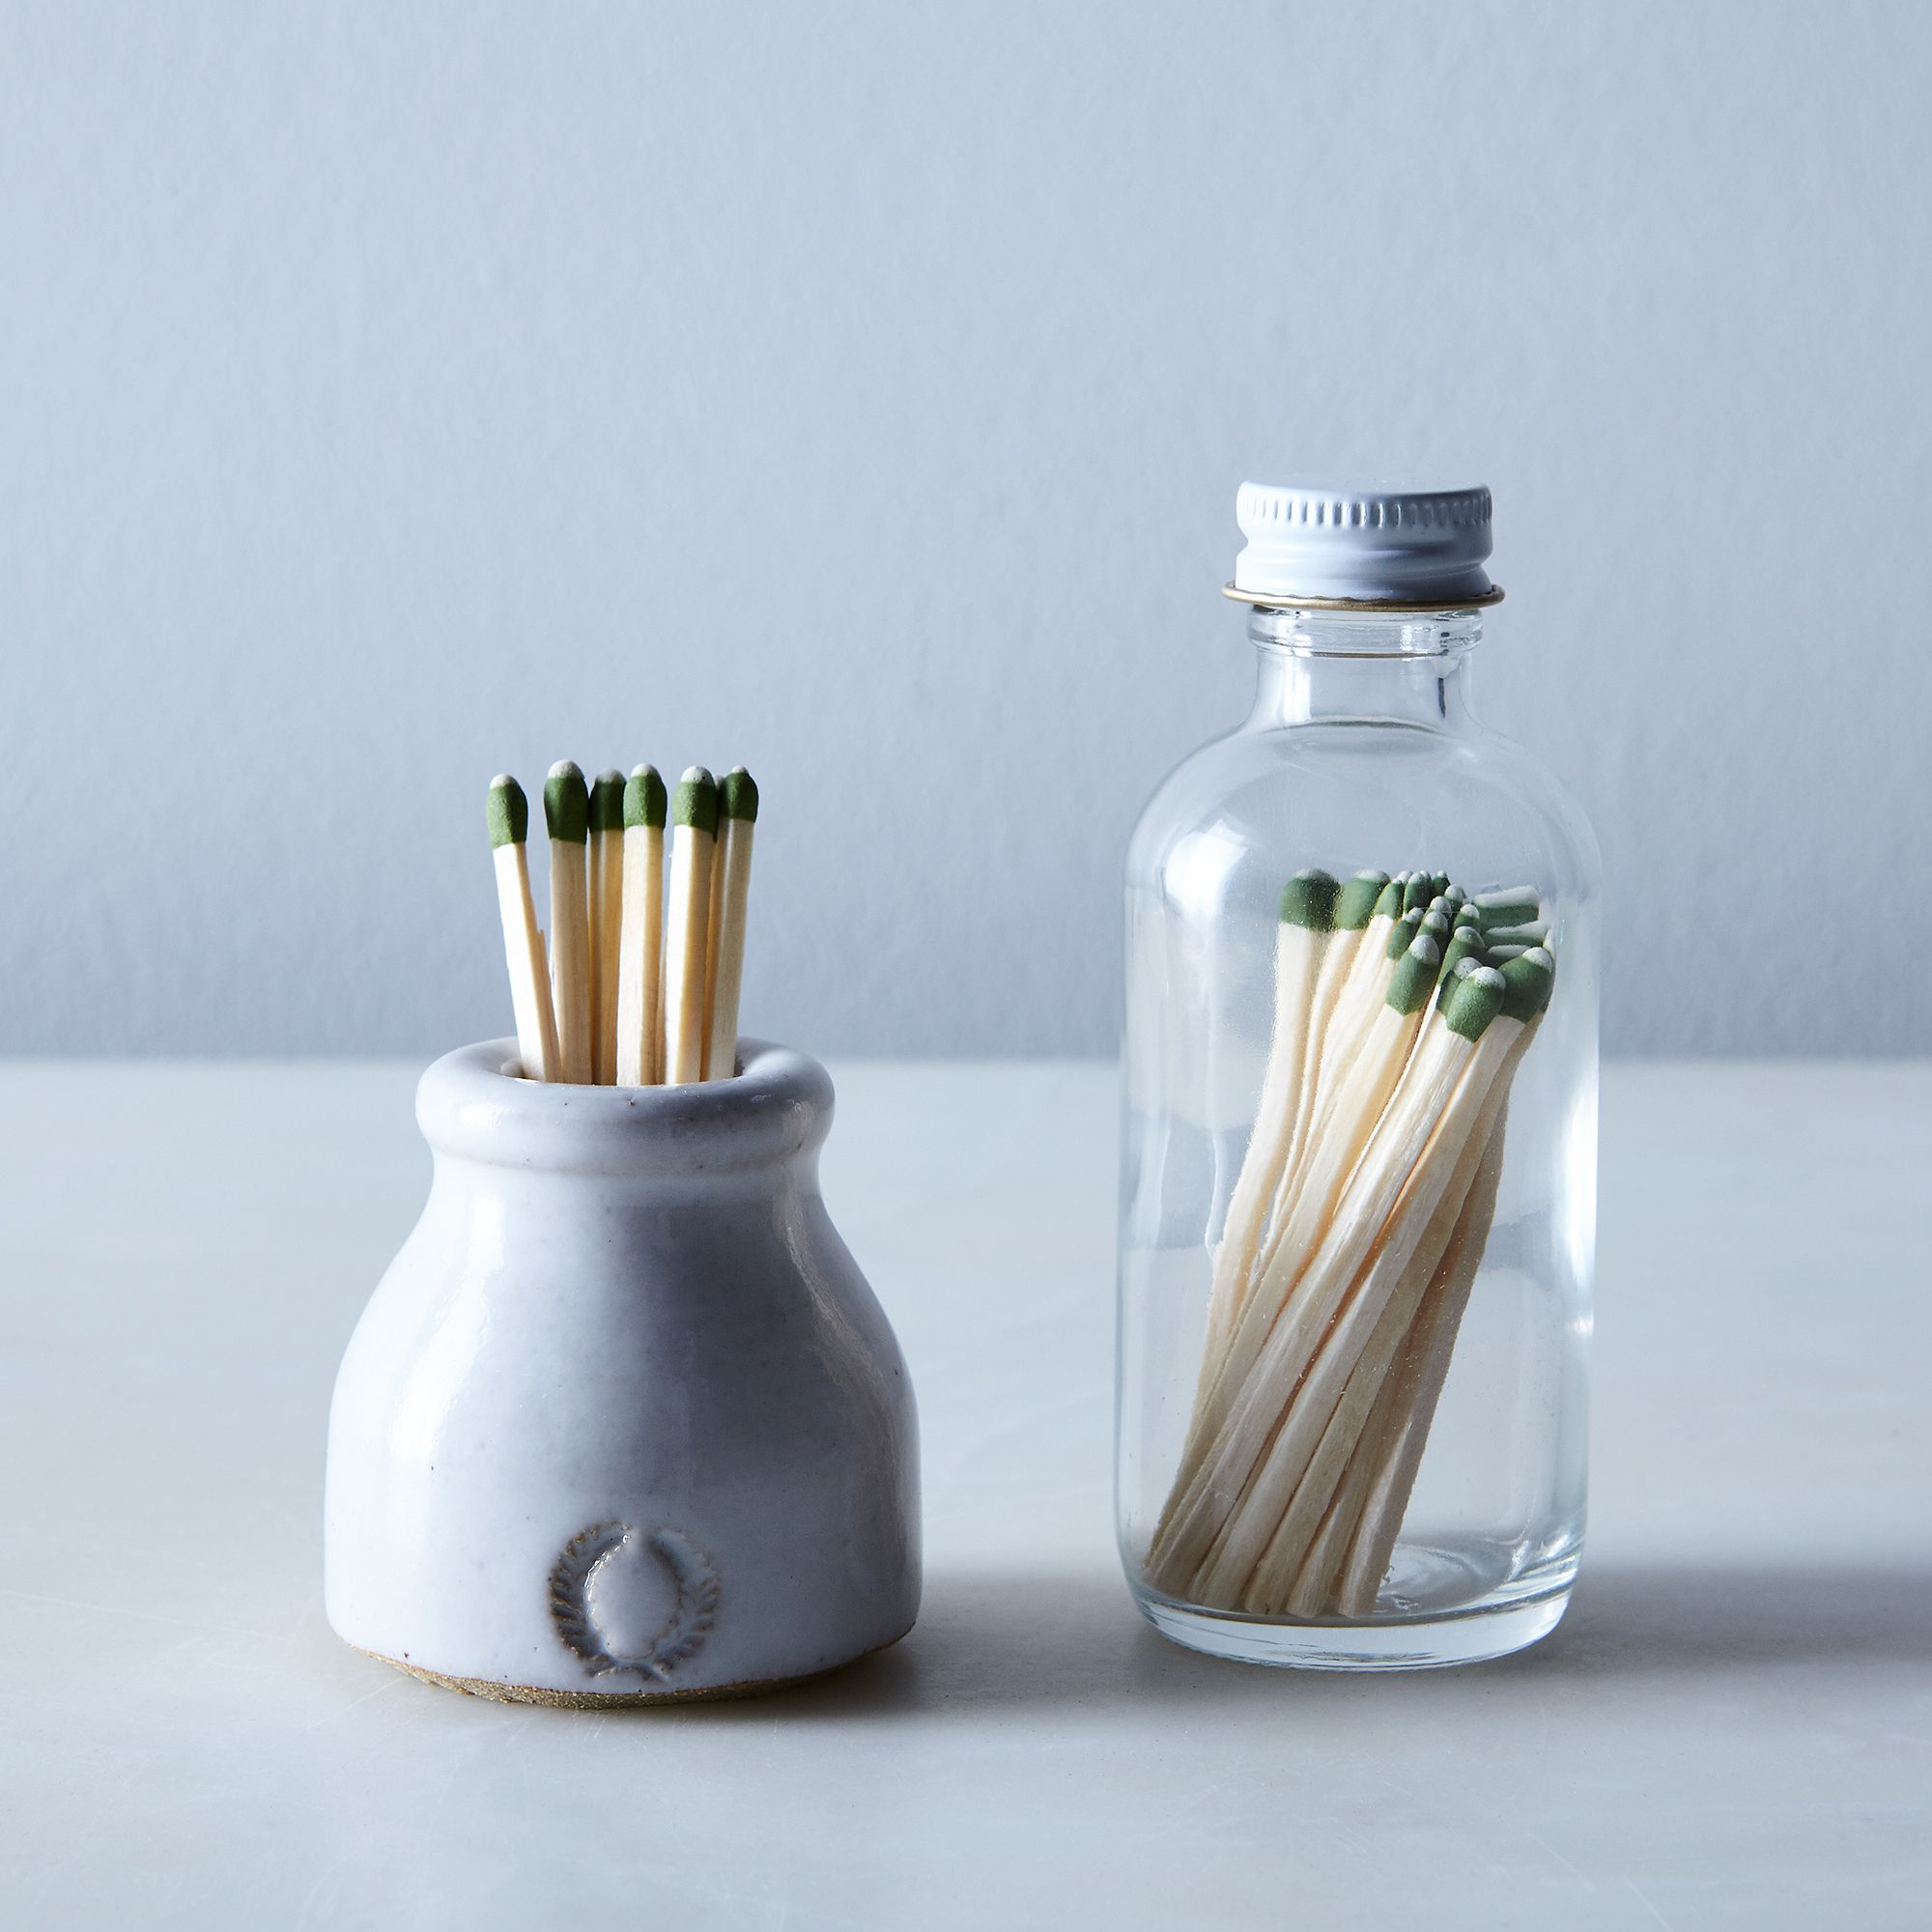 Dreamy Kitchen Accessories by Nicole Ketterer